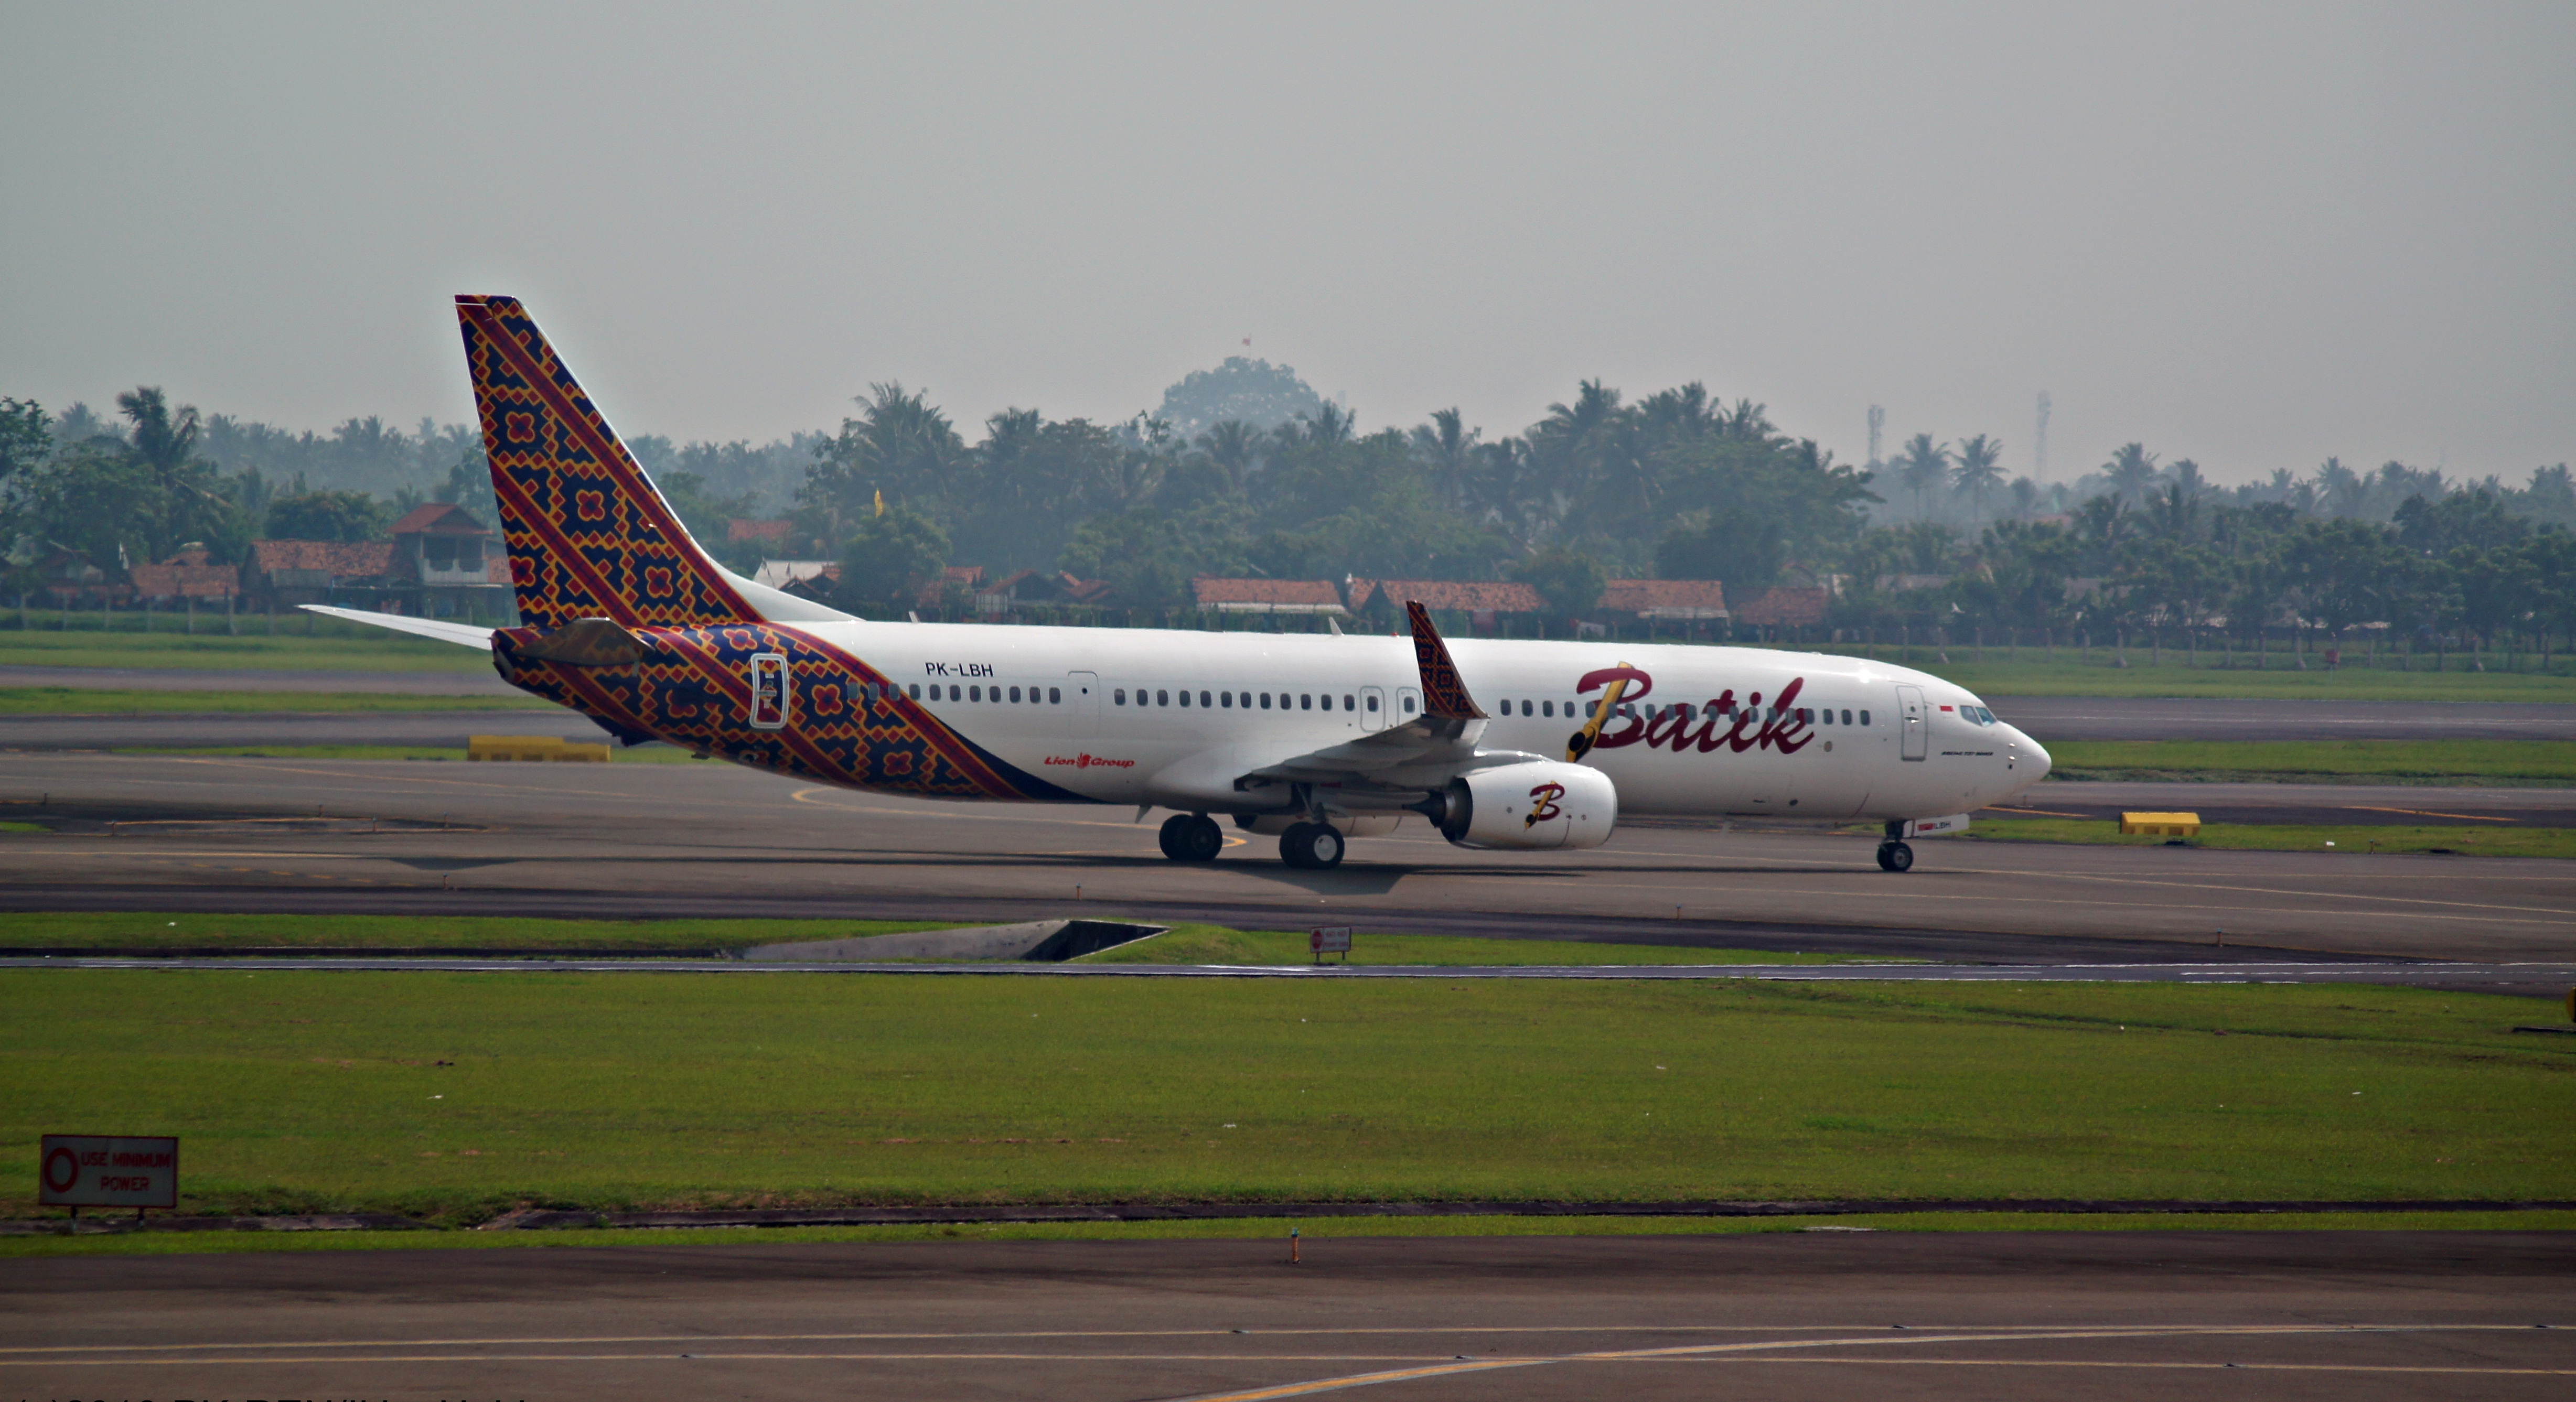 Filebatik air boeing 737 9gper cgk 2013g wikimedia commons filebatik air boeing 737 9gper cgk 2013g stopboris Image collections